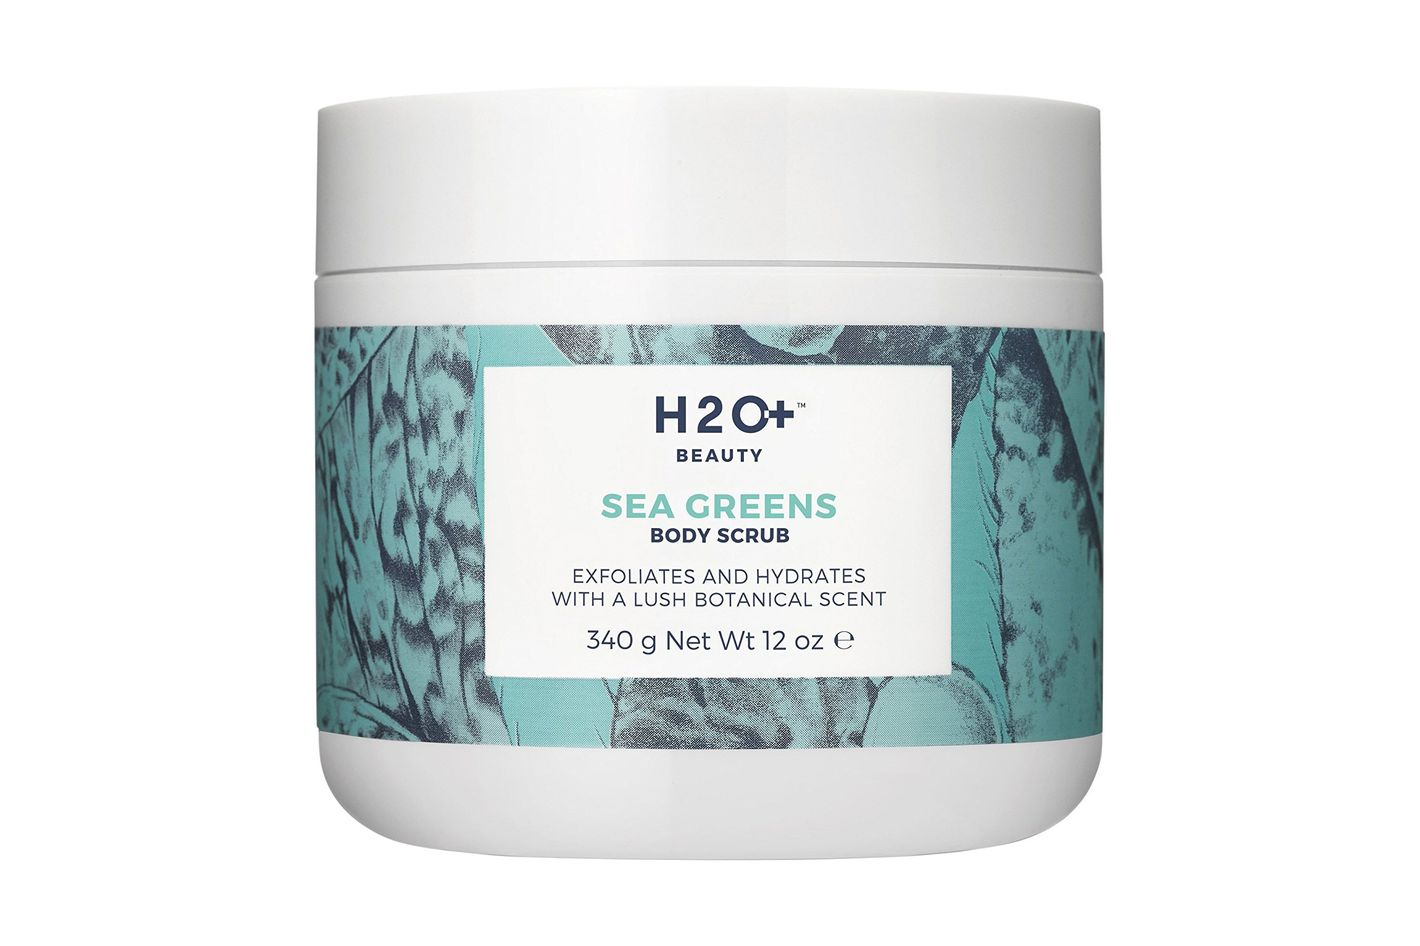 H2O PLUS Sea Greens Body Scrub